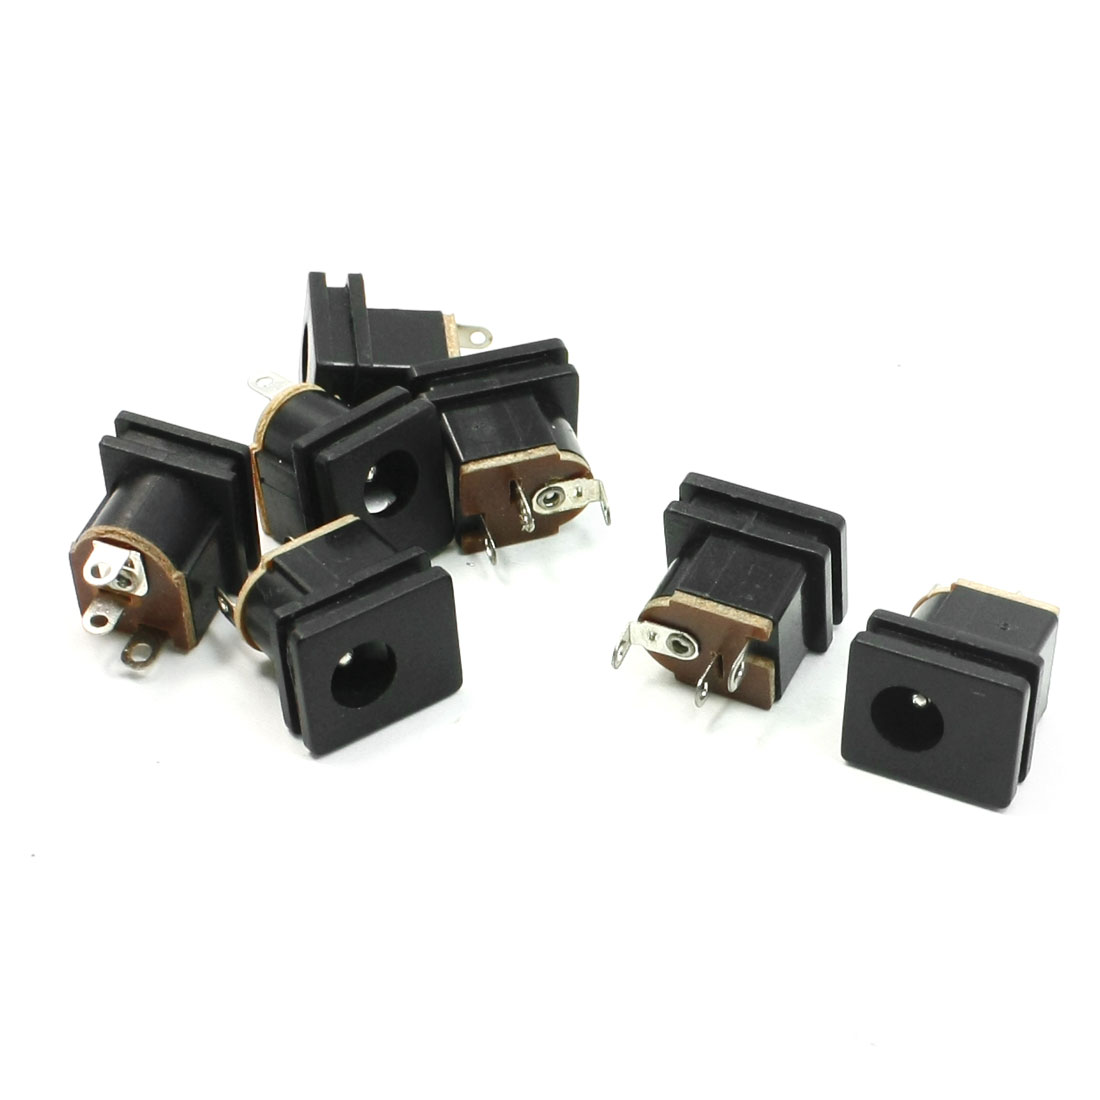 7 Pcs PCB Mounted 2.1x5.5mm Stereo Jack Socket Audio Video Connector